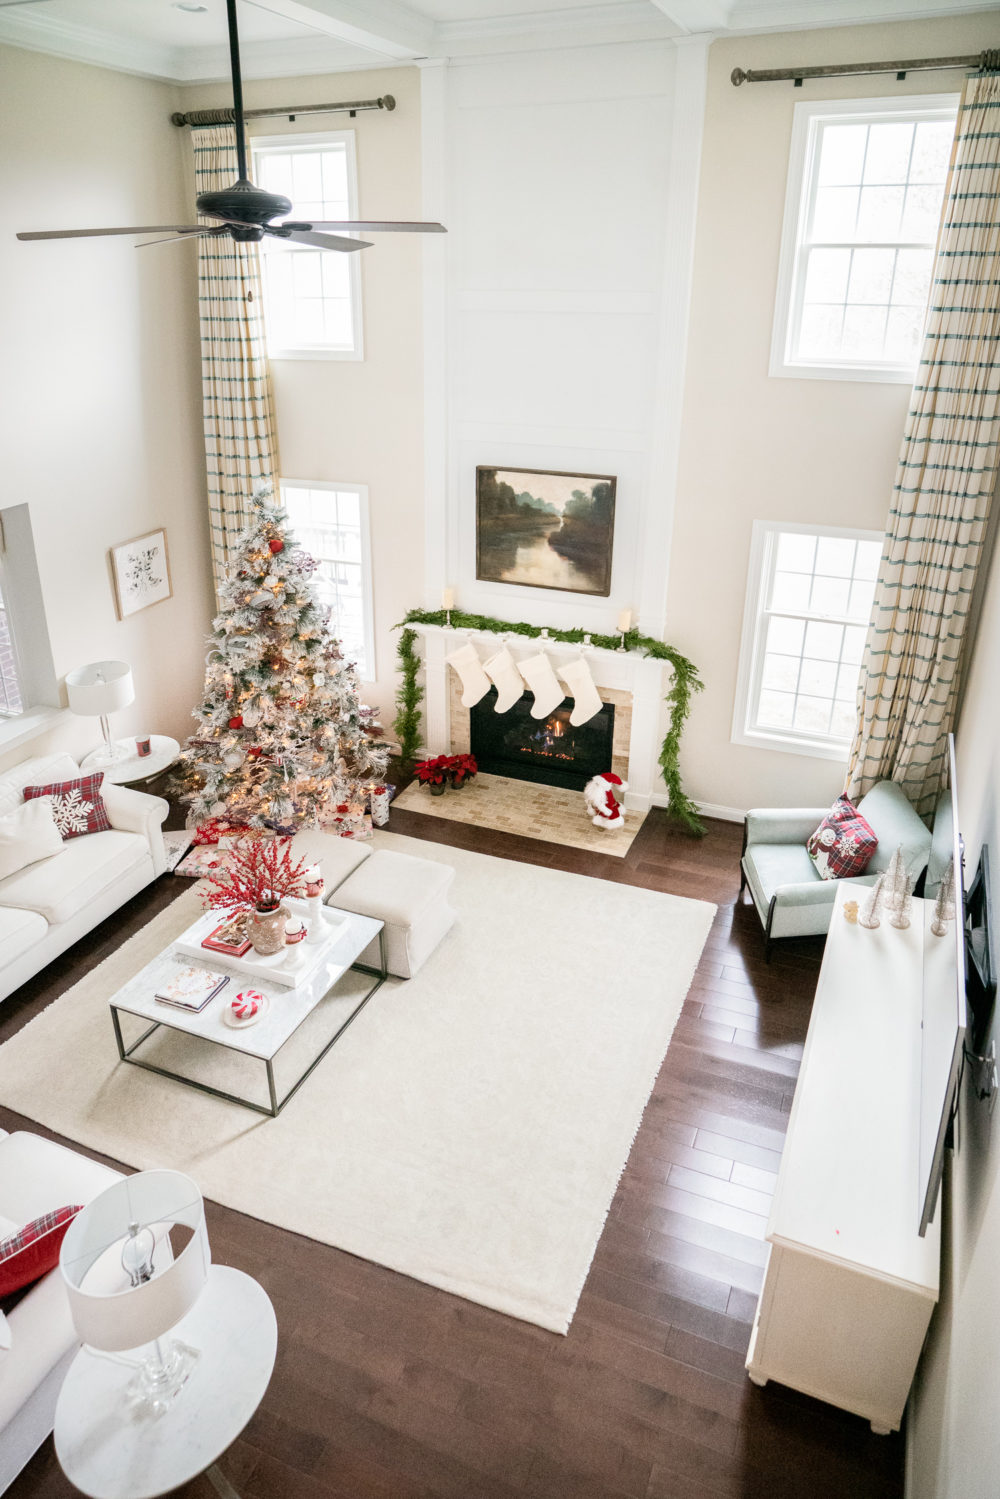 Petite Fashion Blog | Our Home for the Holidays | Flocked Christmas Tree